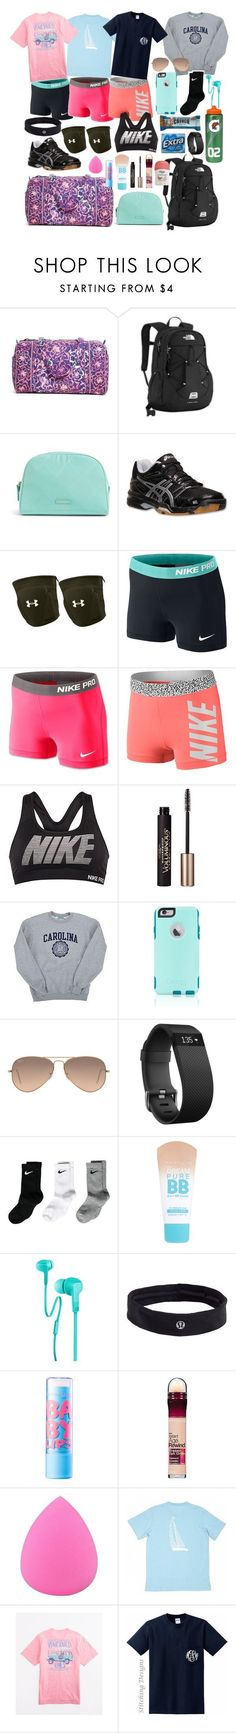 Volleyball Camp Essentials by whalesandprints ❤ liked on Polyvore featuring Vera Bradley, The North Face, Asics, Under Armour, NIKE, LOréal Paris, Champion, OtterBox, Ray-Ban and Fitbit